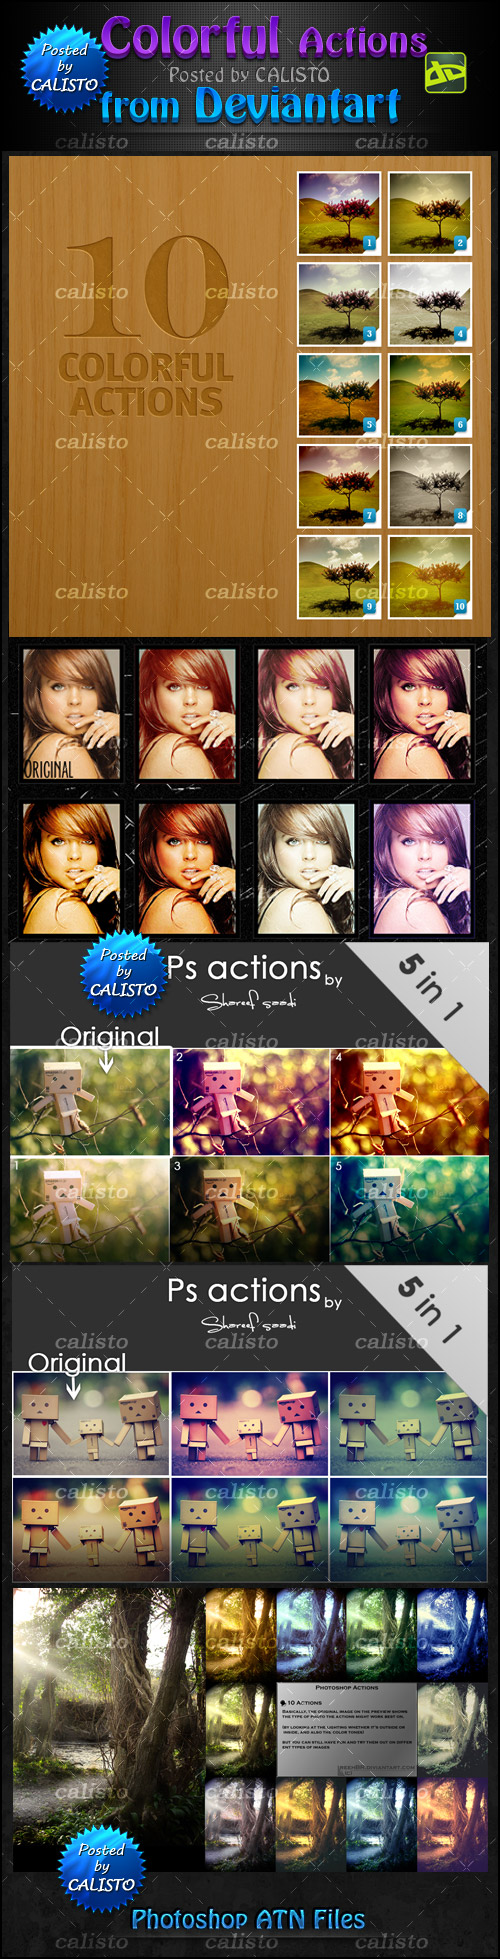 Colorful Actions